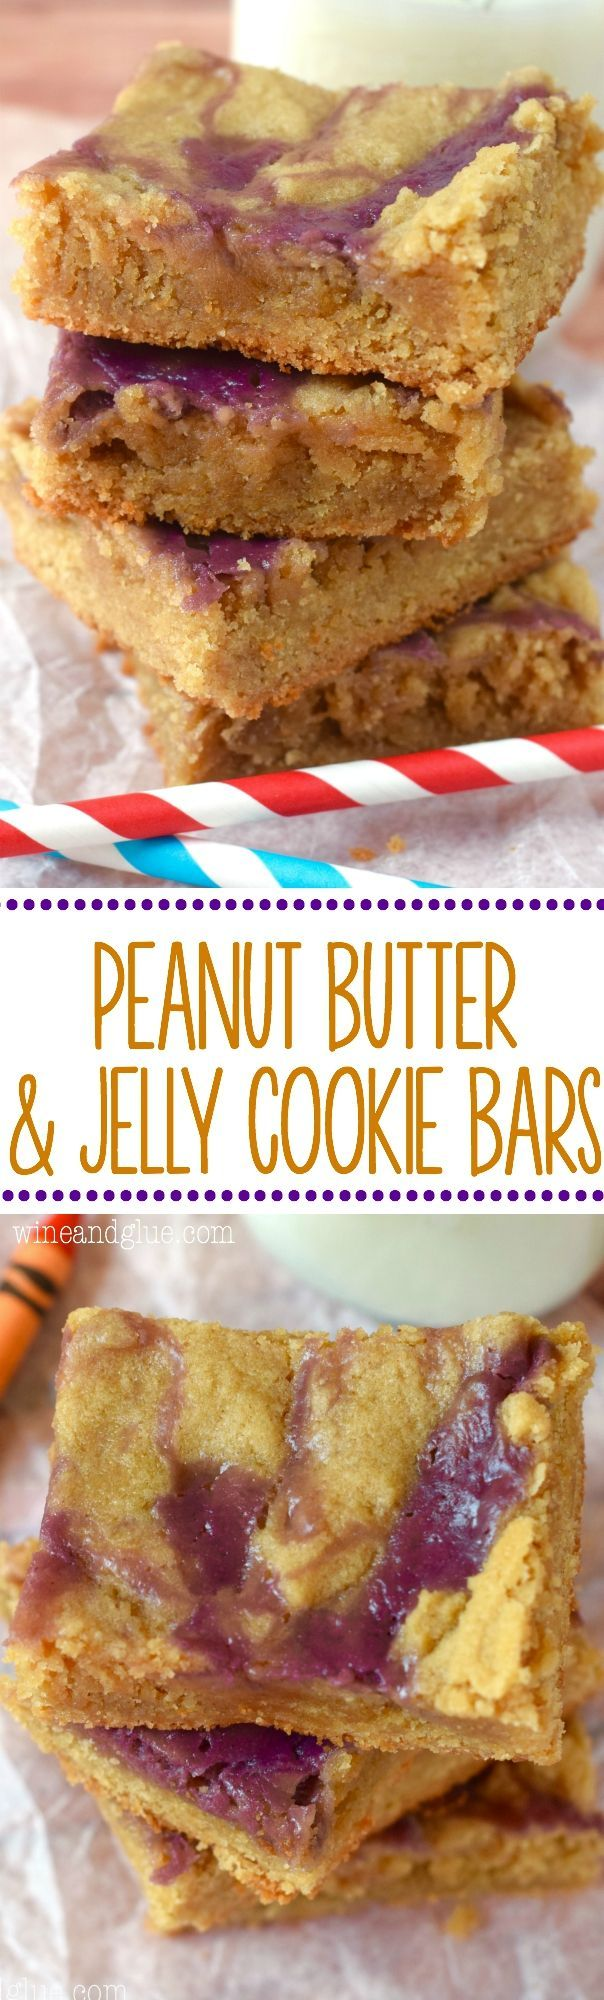 These Peanut Butter and Jelly Cookie Bars are a snap to make, but are SO GOOD the pan will disappear before you know it!